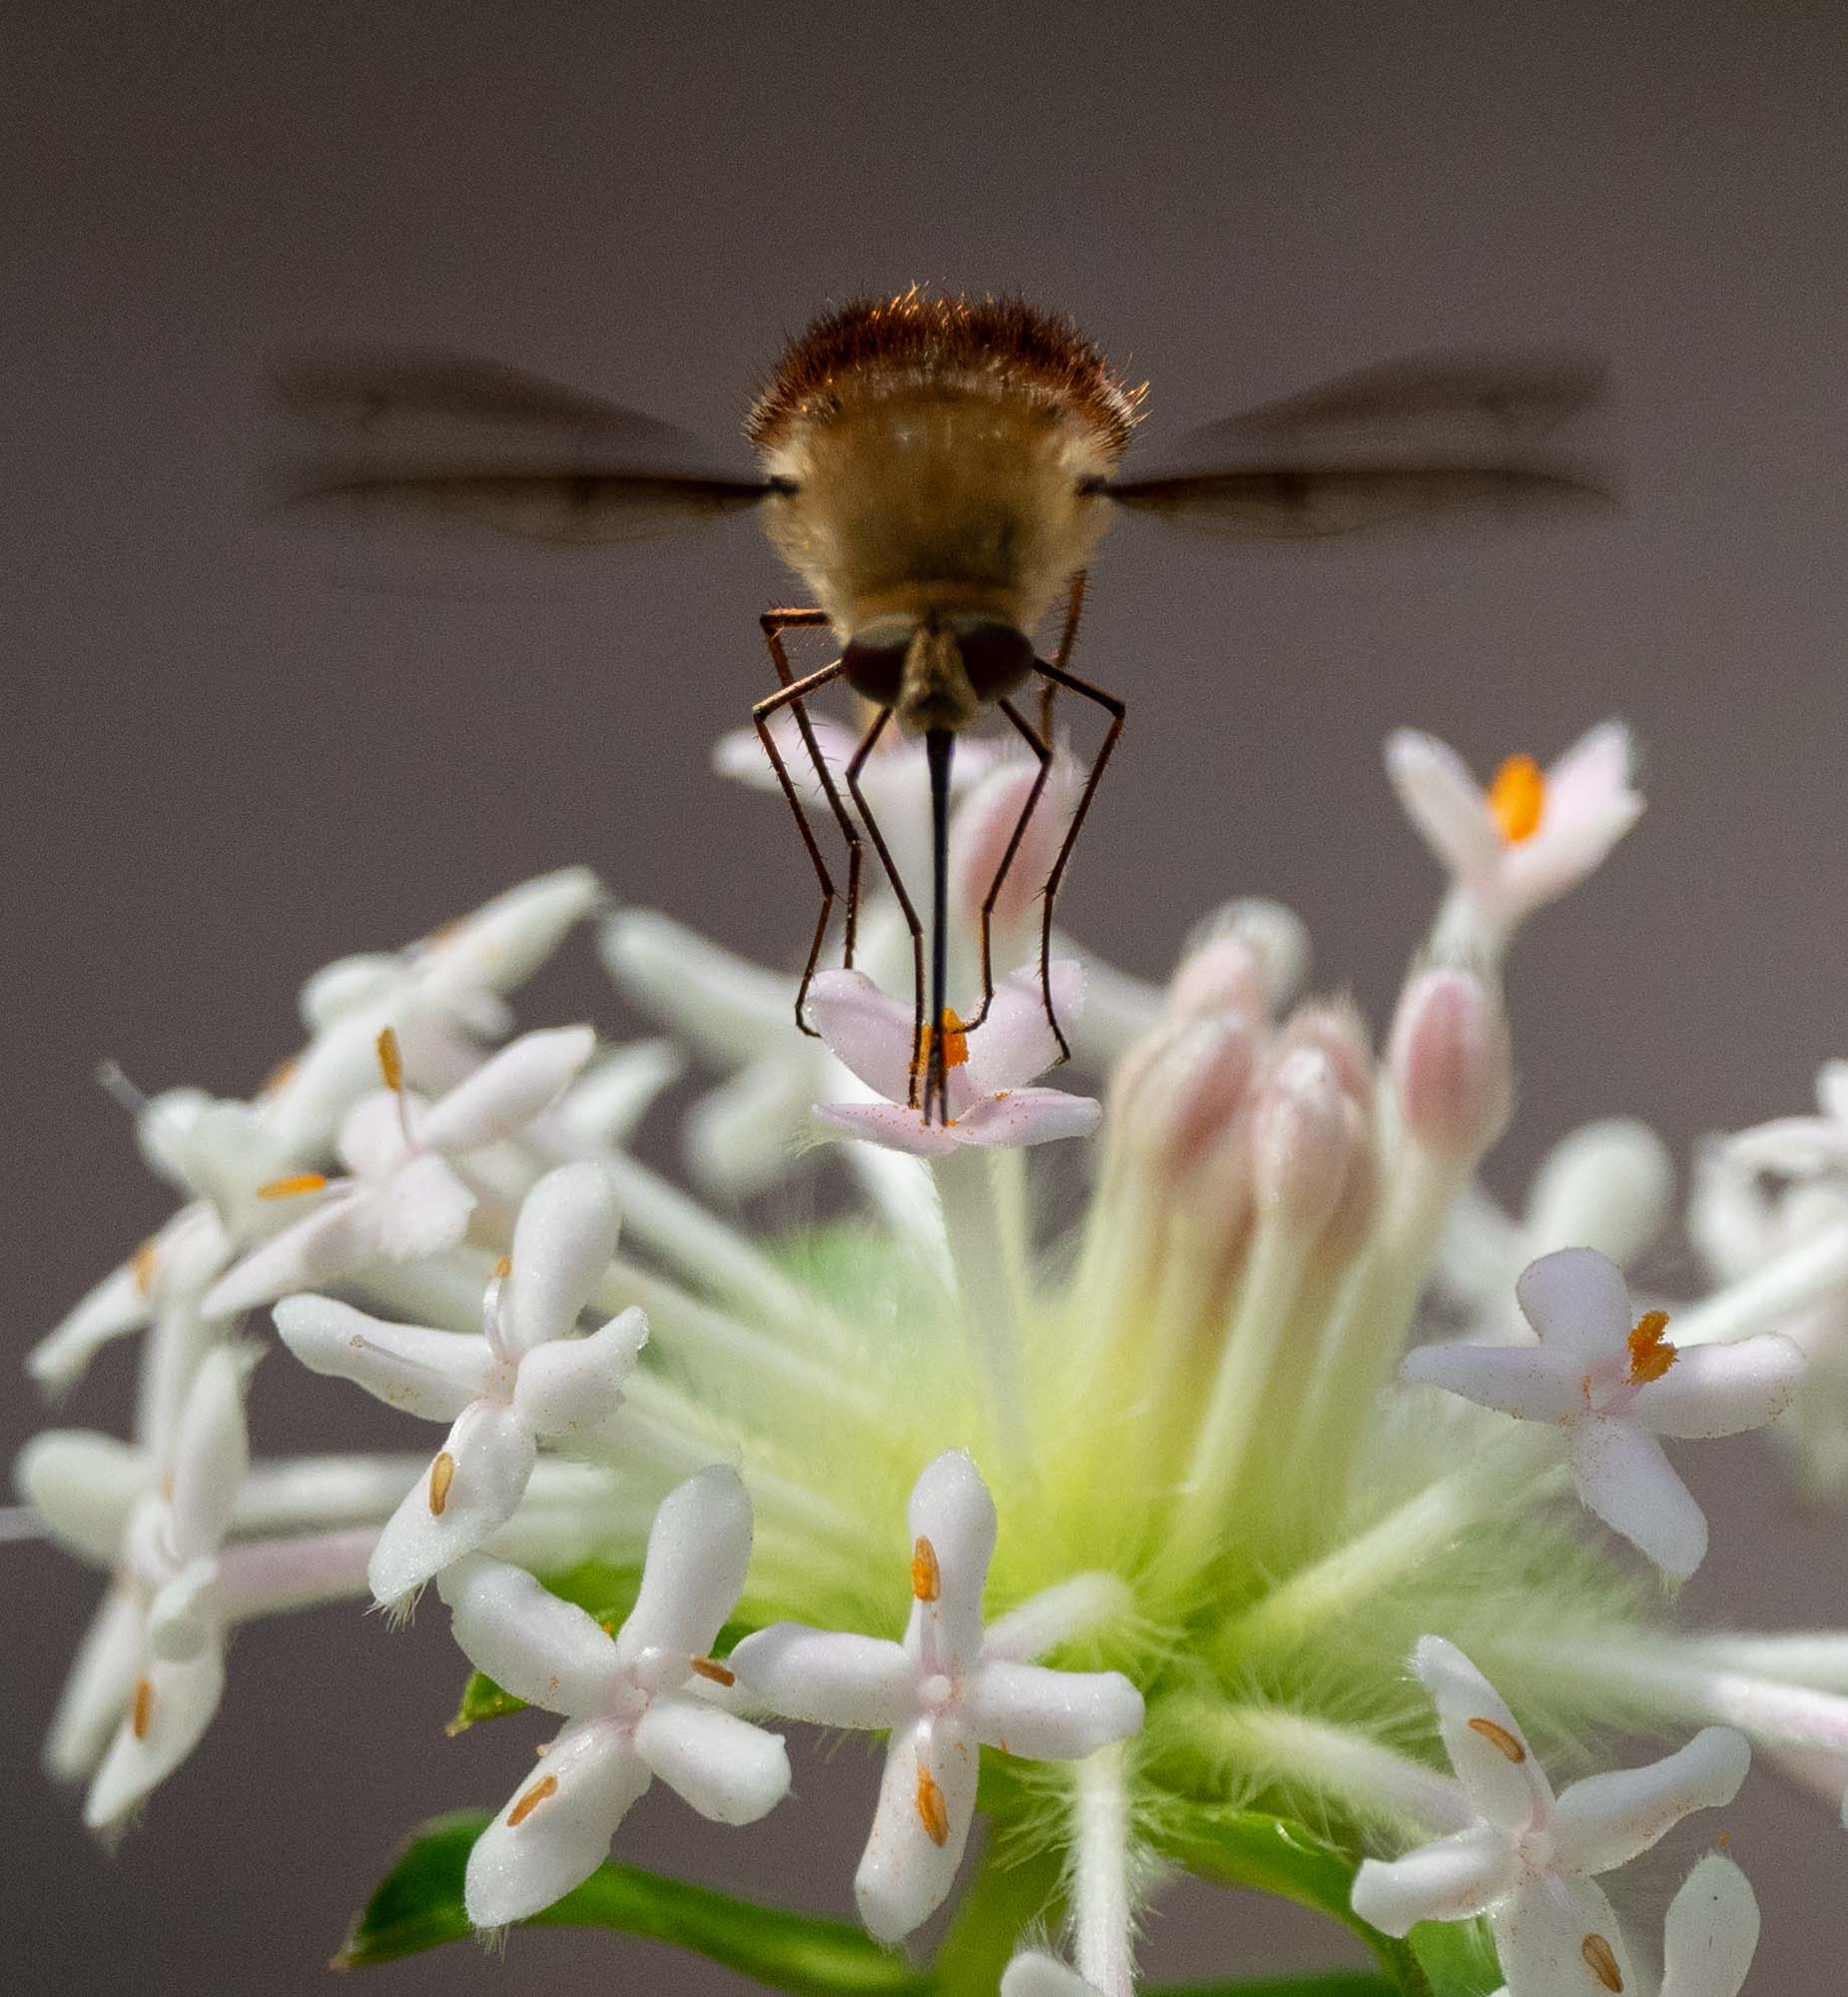 long legs and long proboscis of the bee fly